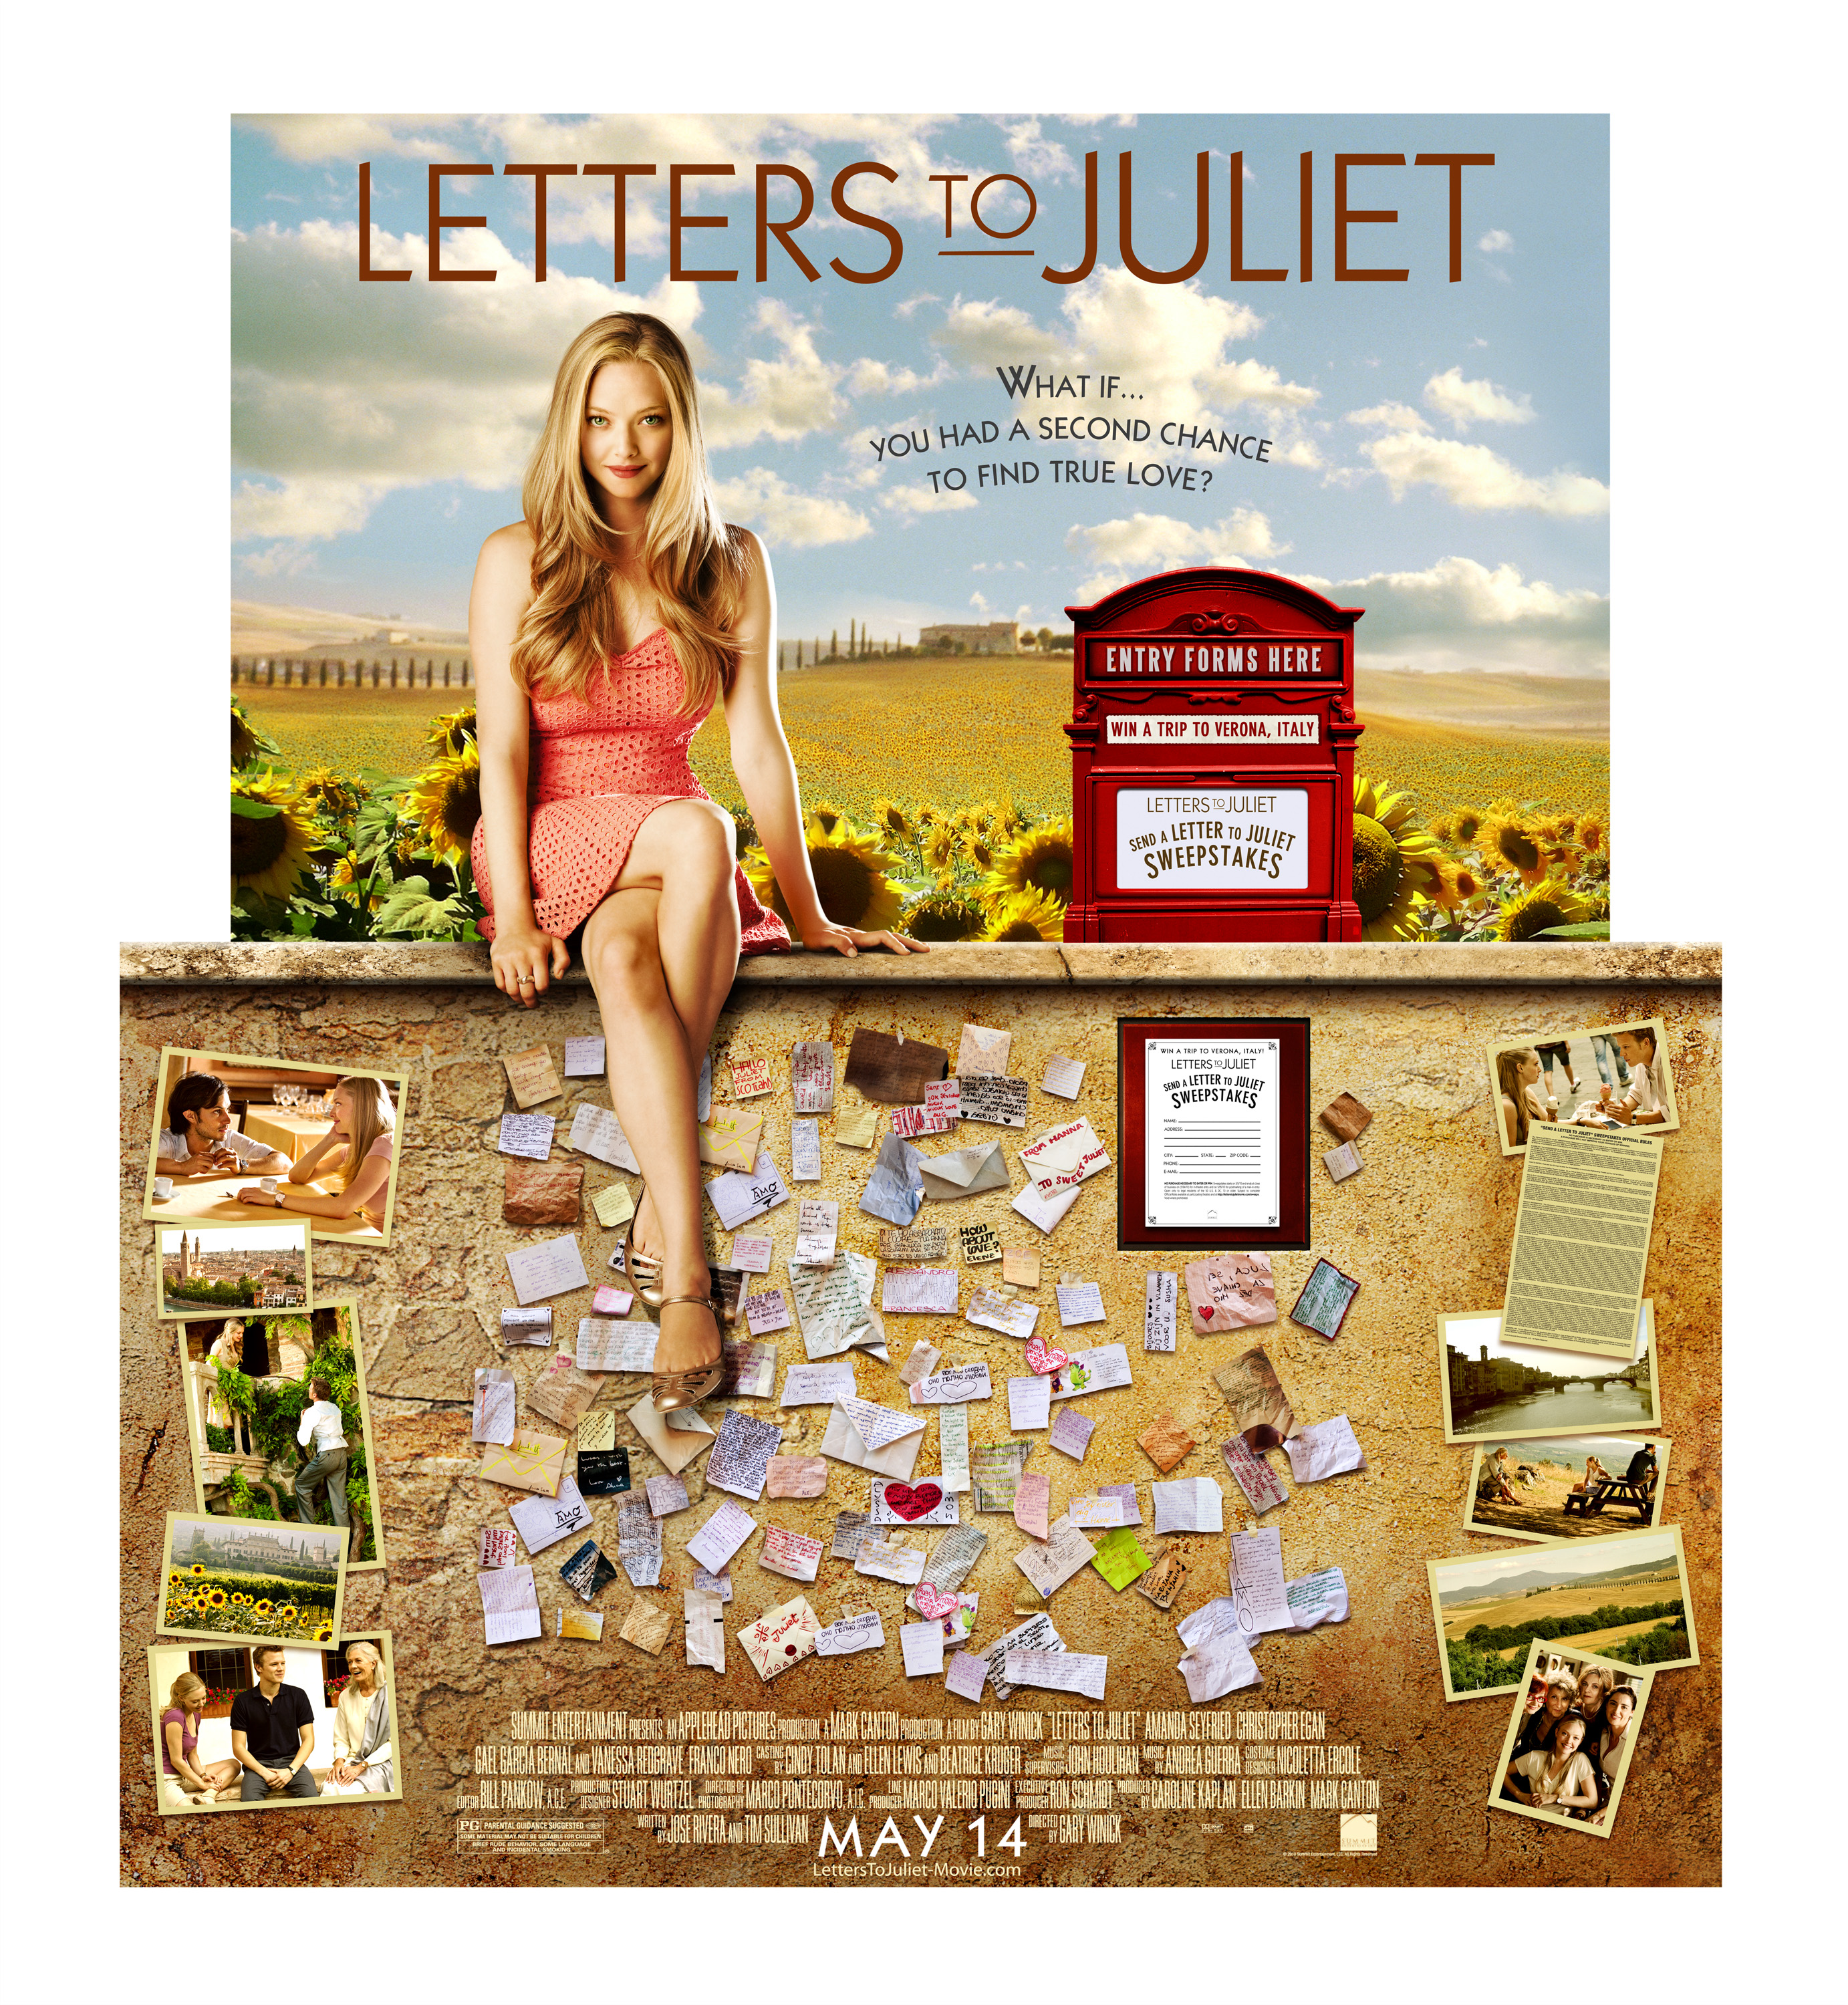 Exclusive Artwork Featuring Amanda Seyfried In Letters To